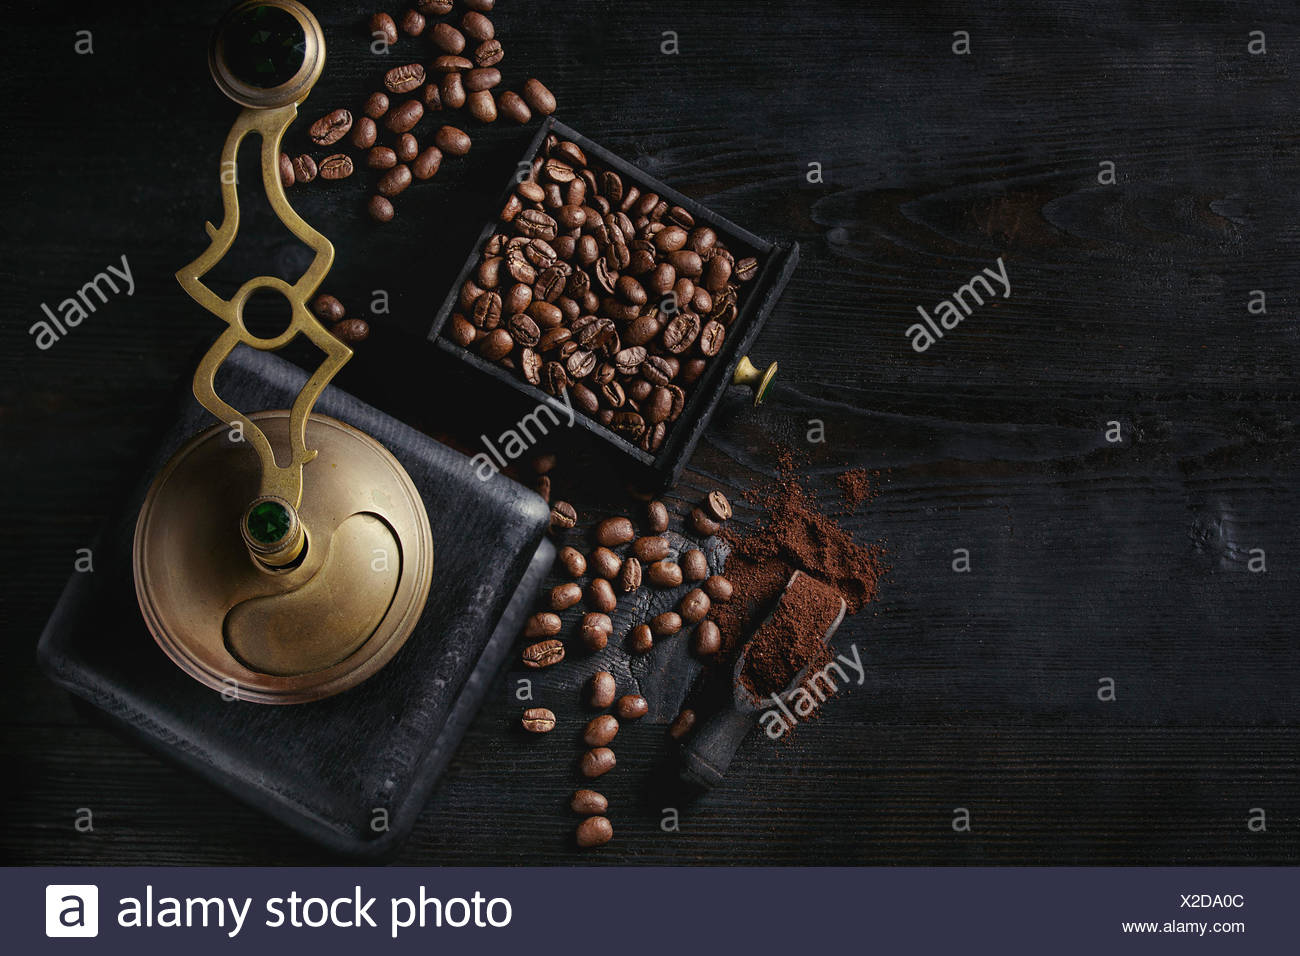 Roasted coffee beans and grind coffee in wood box with vintage coffee grinder and scoop over black wooden burnt background. Top view with space. Stock Photo